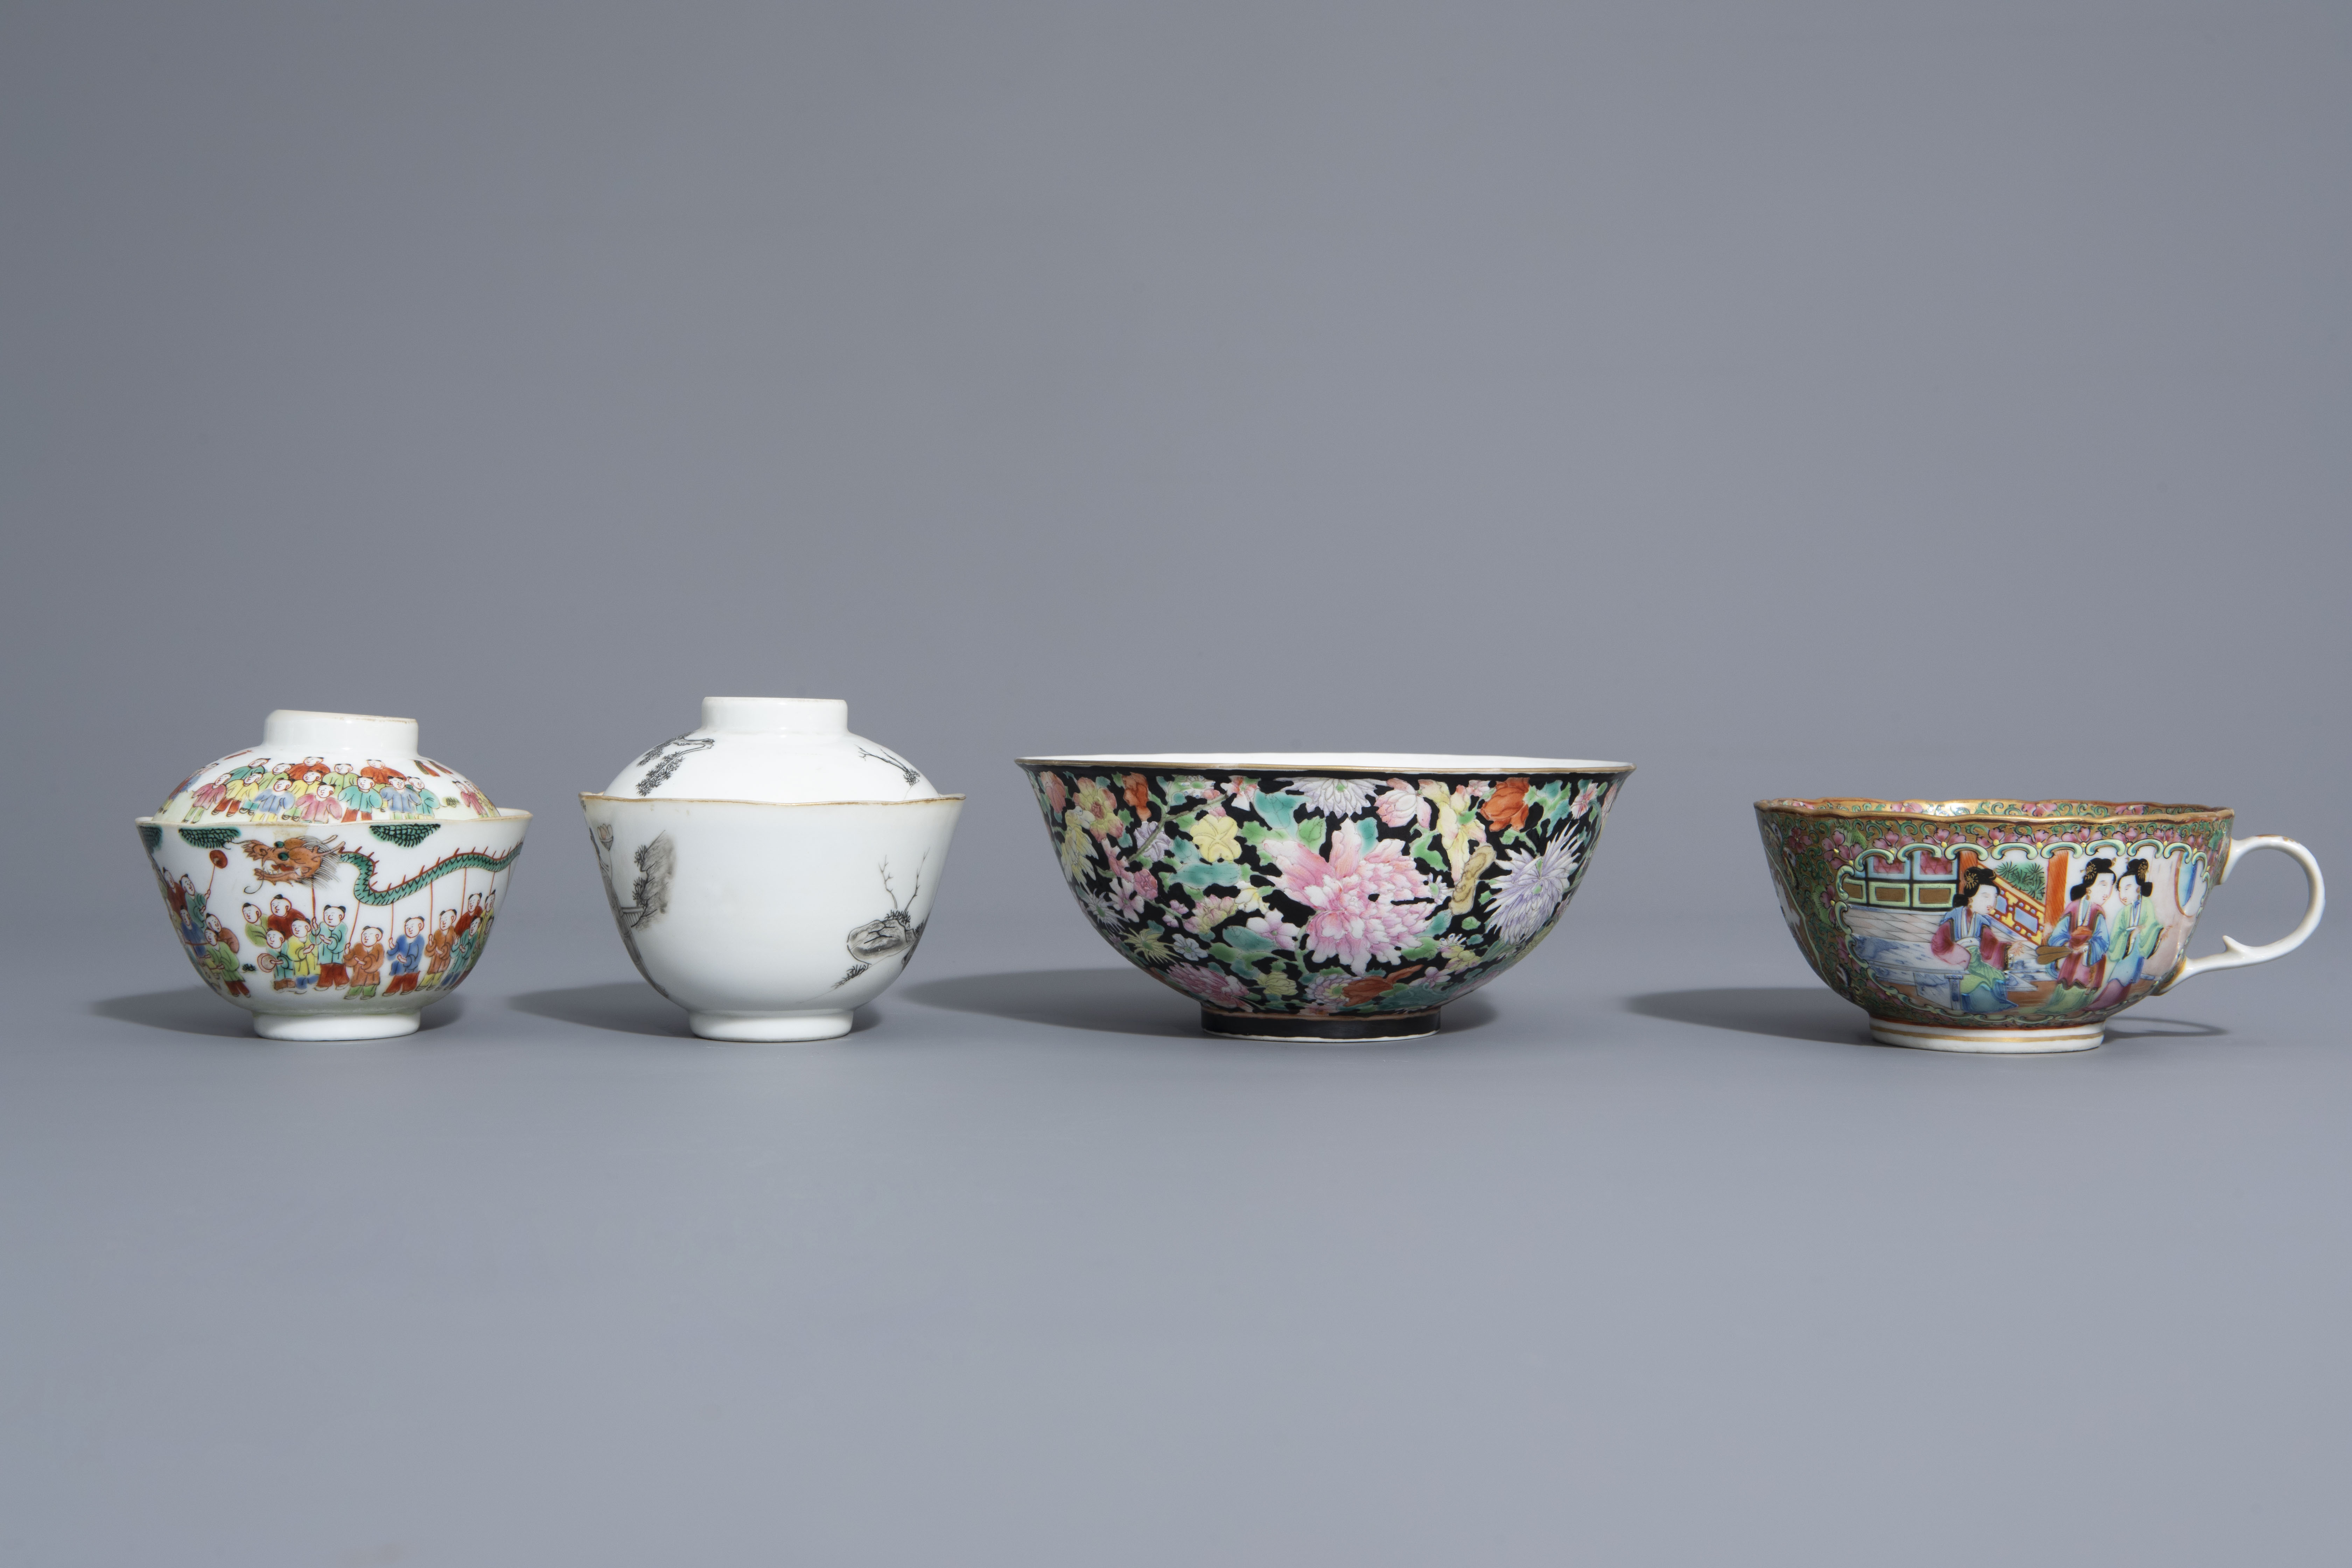 Three Chinese famille rose and grisaille bowls and a Canton bowl on stand, 19th/20th C. - Image 4 of 9